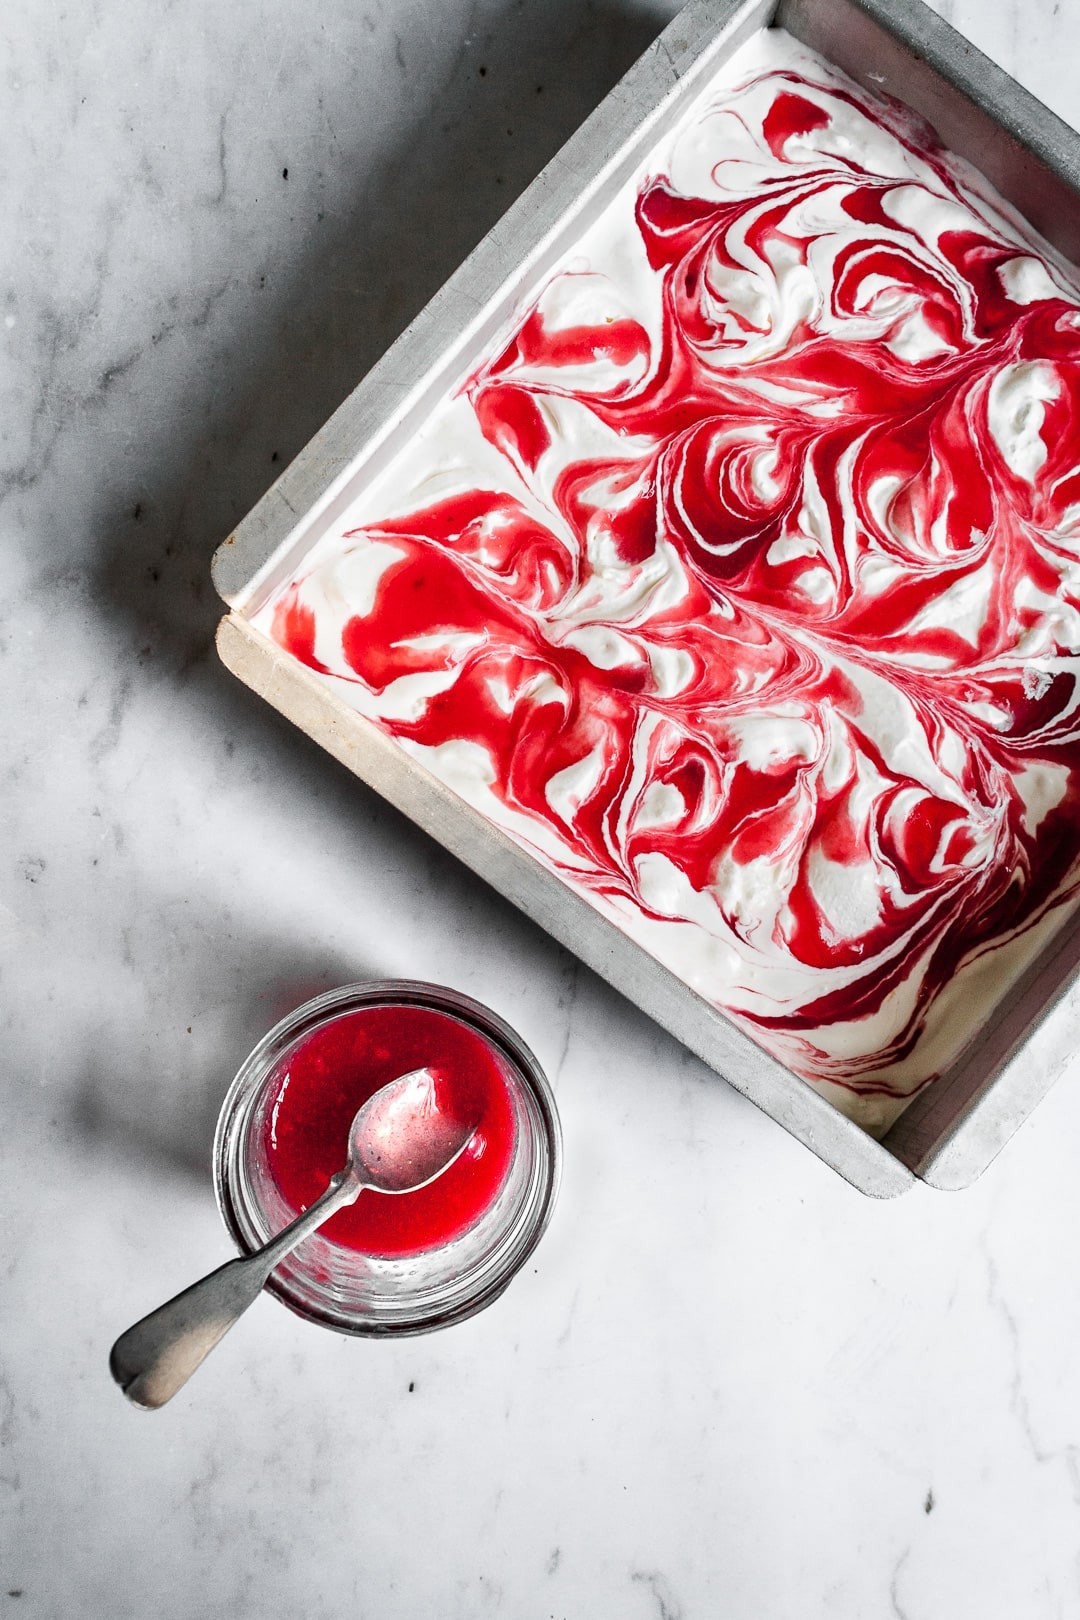 Lemon Mascarpone Ice Cream with Currant Swirl in a square metal pan with a jar of currant sauce and spoon nearby